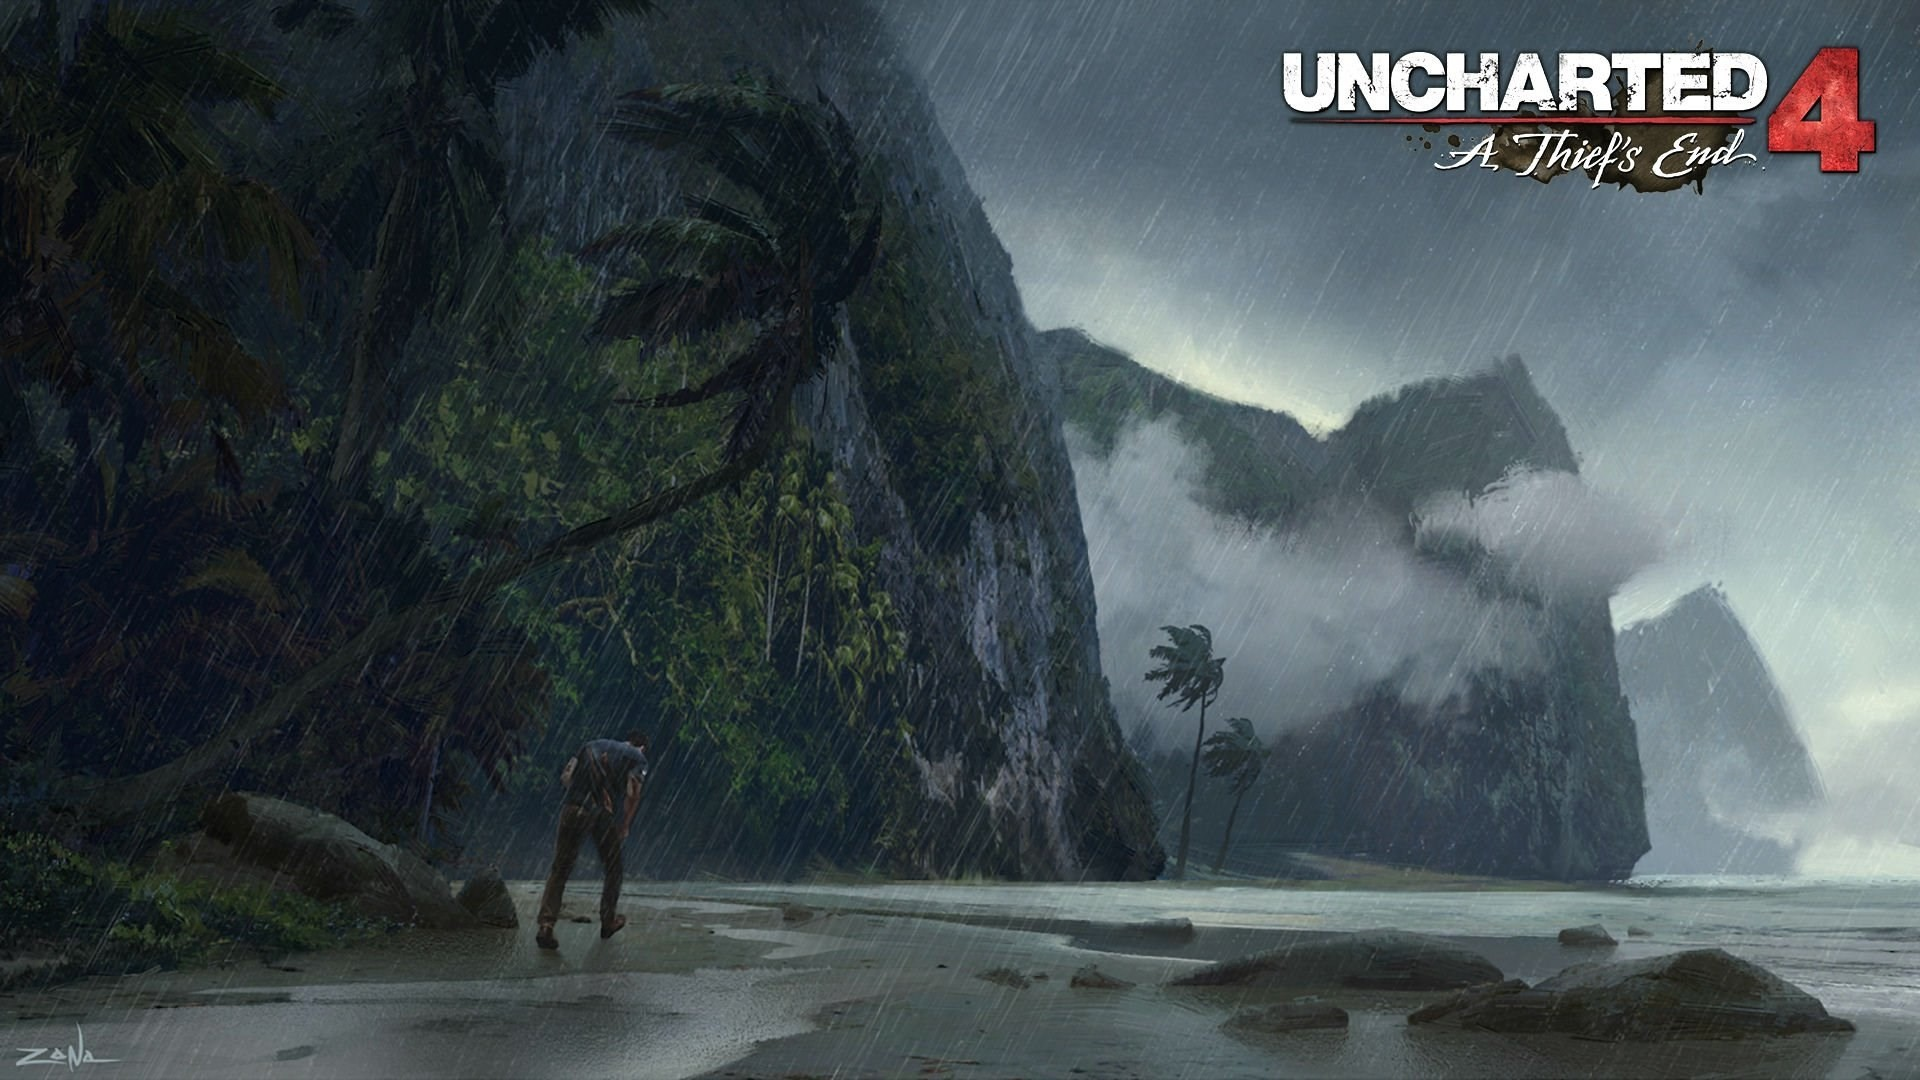 1920x1080 uncharted 4 a thiefs end backround - Full HD Wallpapers, Photos by Sedona  Turner (